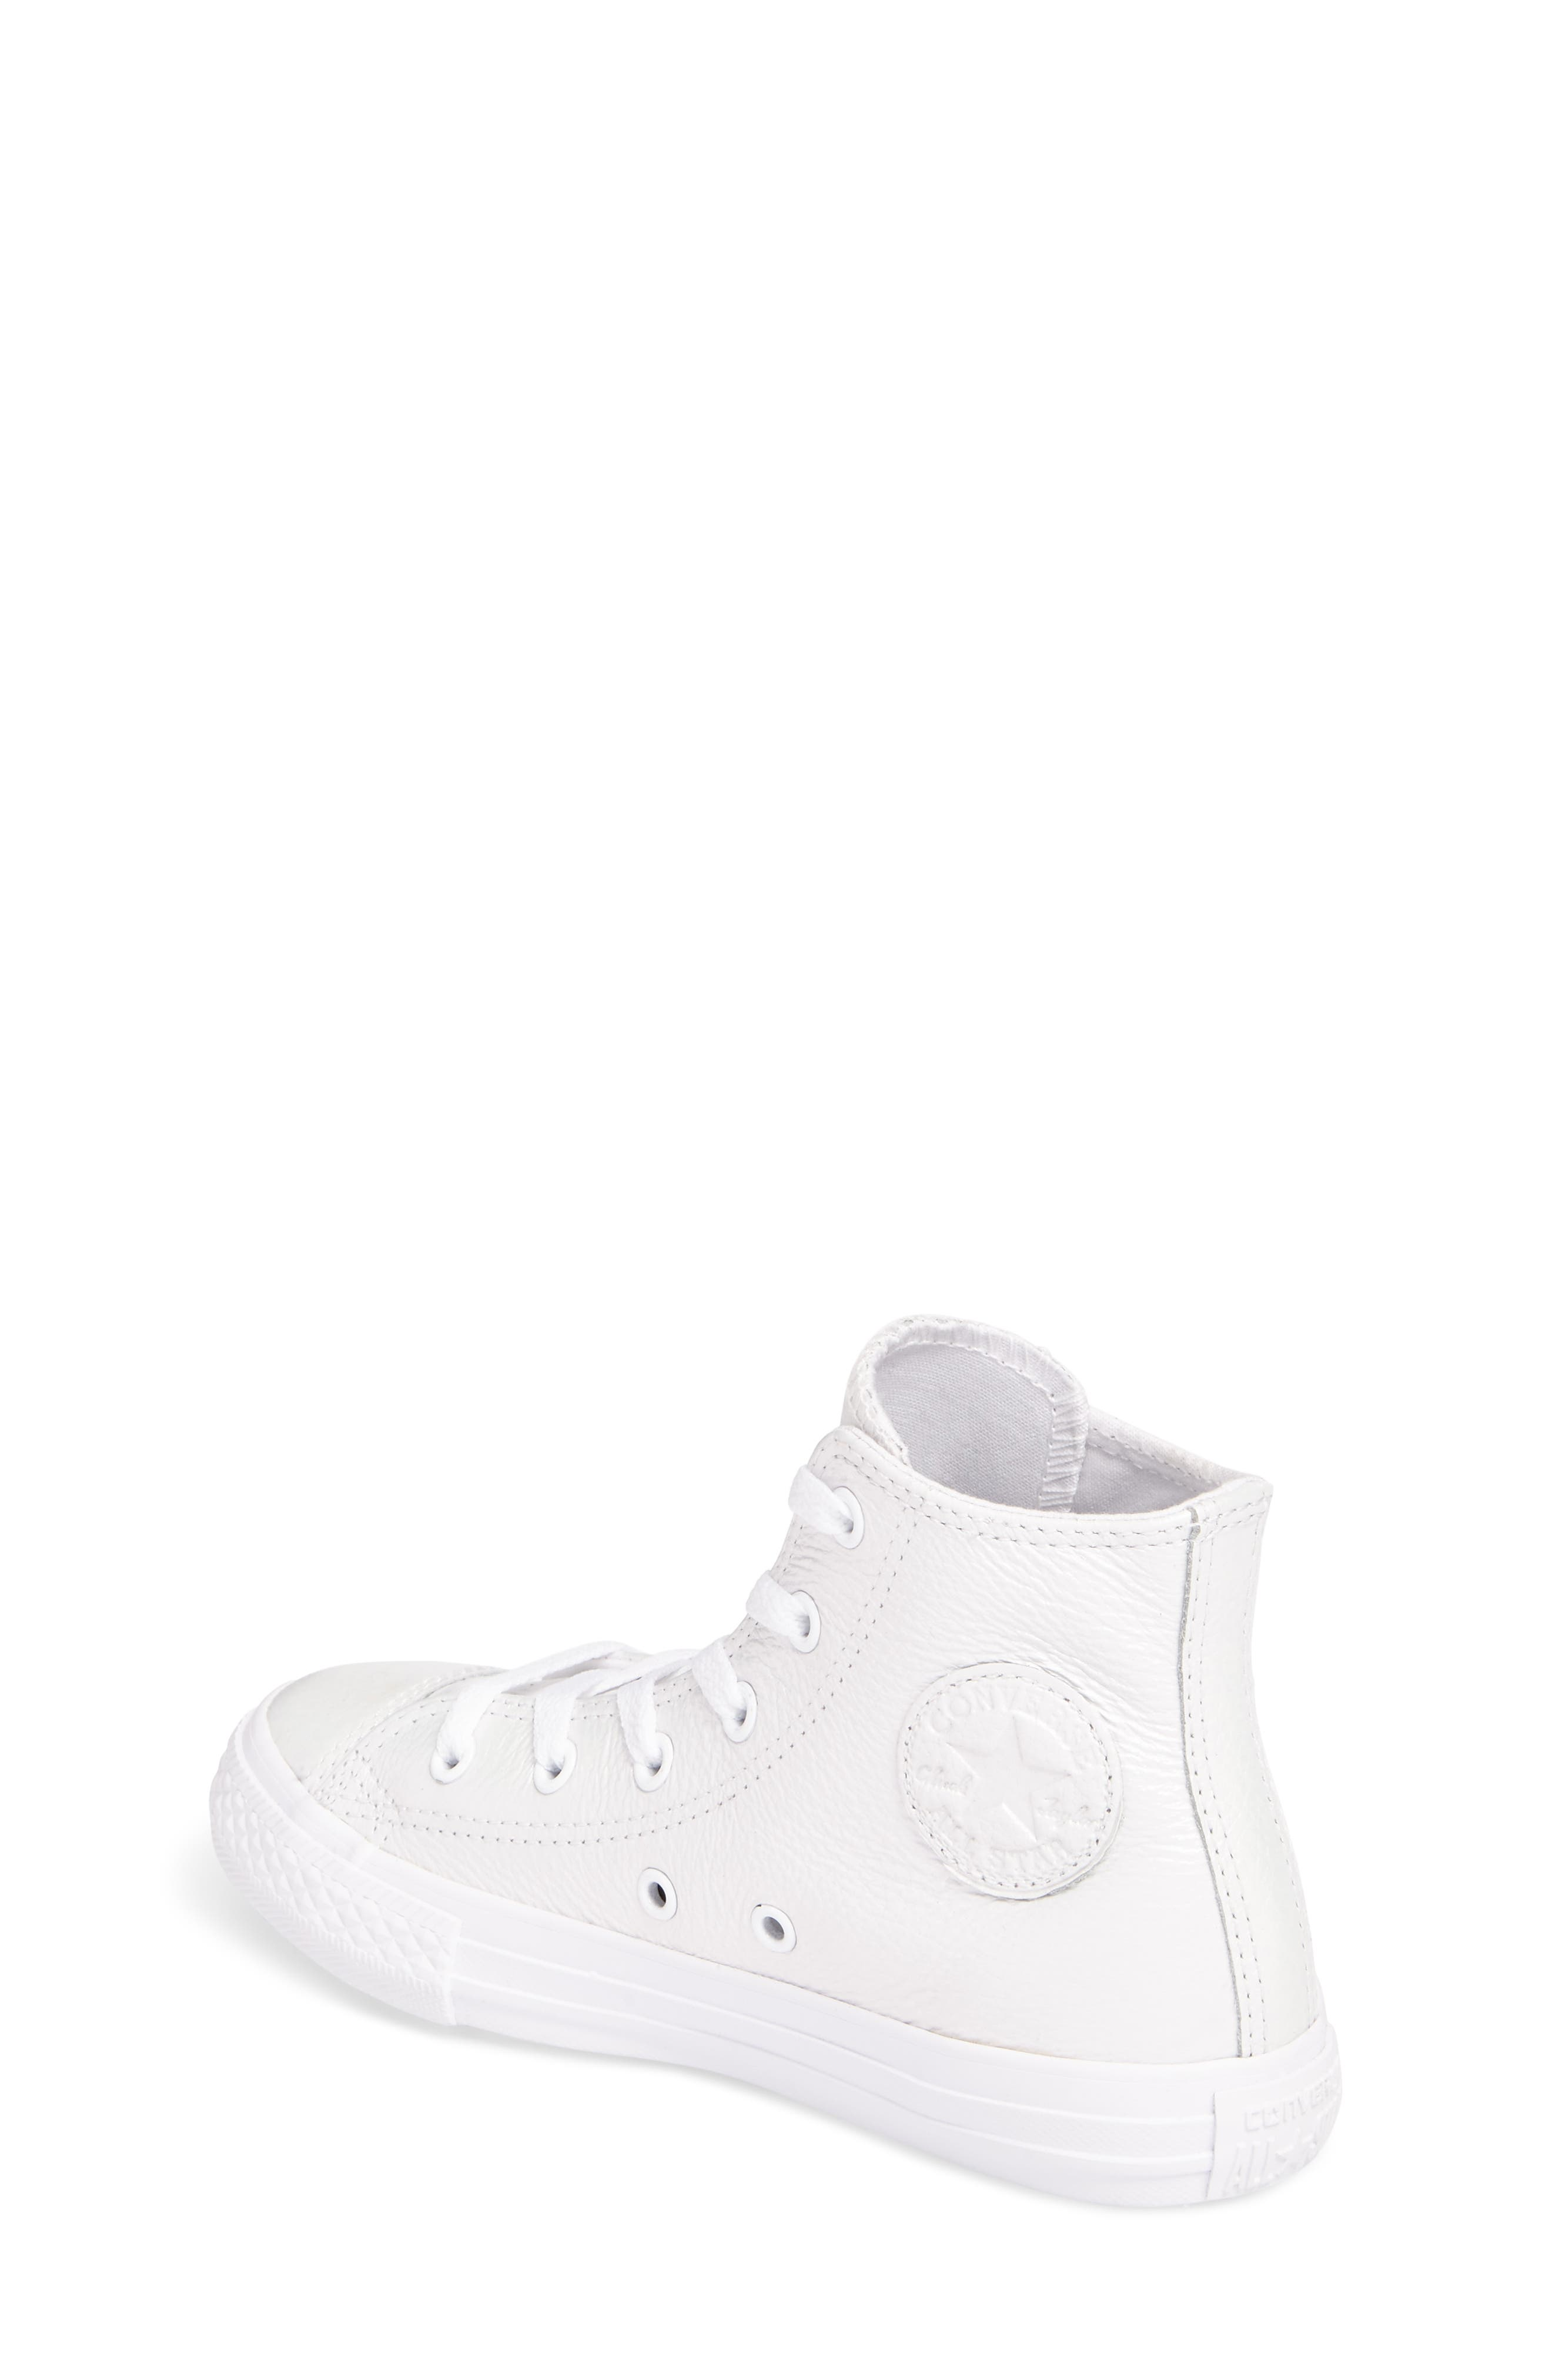 Chuck Taylor<sup>®</sup> All Star<sup>®</sup> Iridescent Leather High Top Sneaker,                             Alternate thumbnail 3, color,